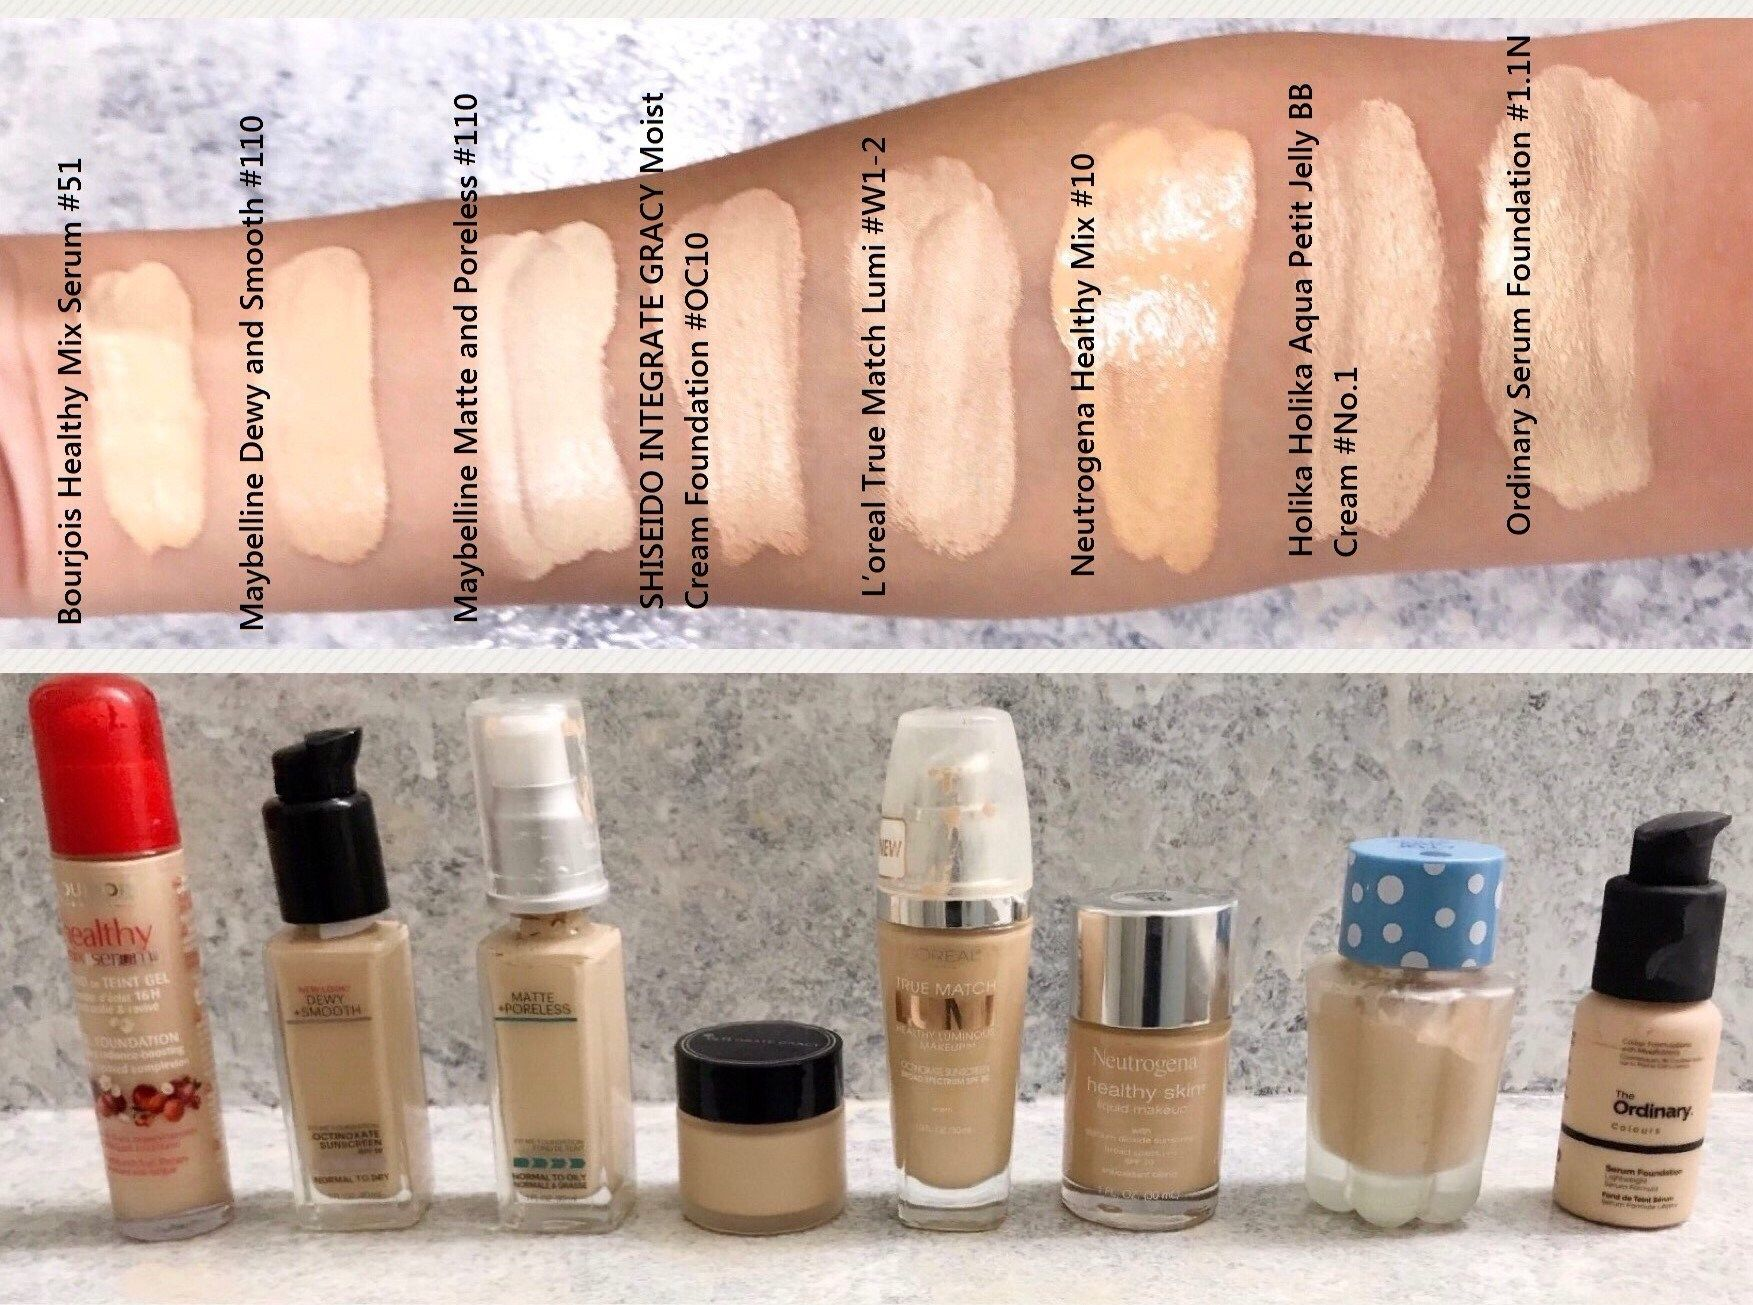 Pale Foundation Mega Swatch Review And Comparison ǀ Light To